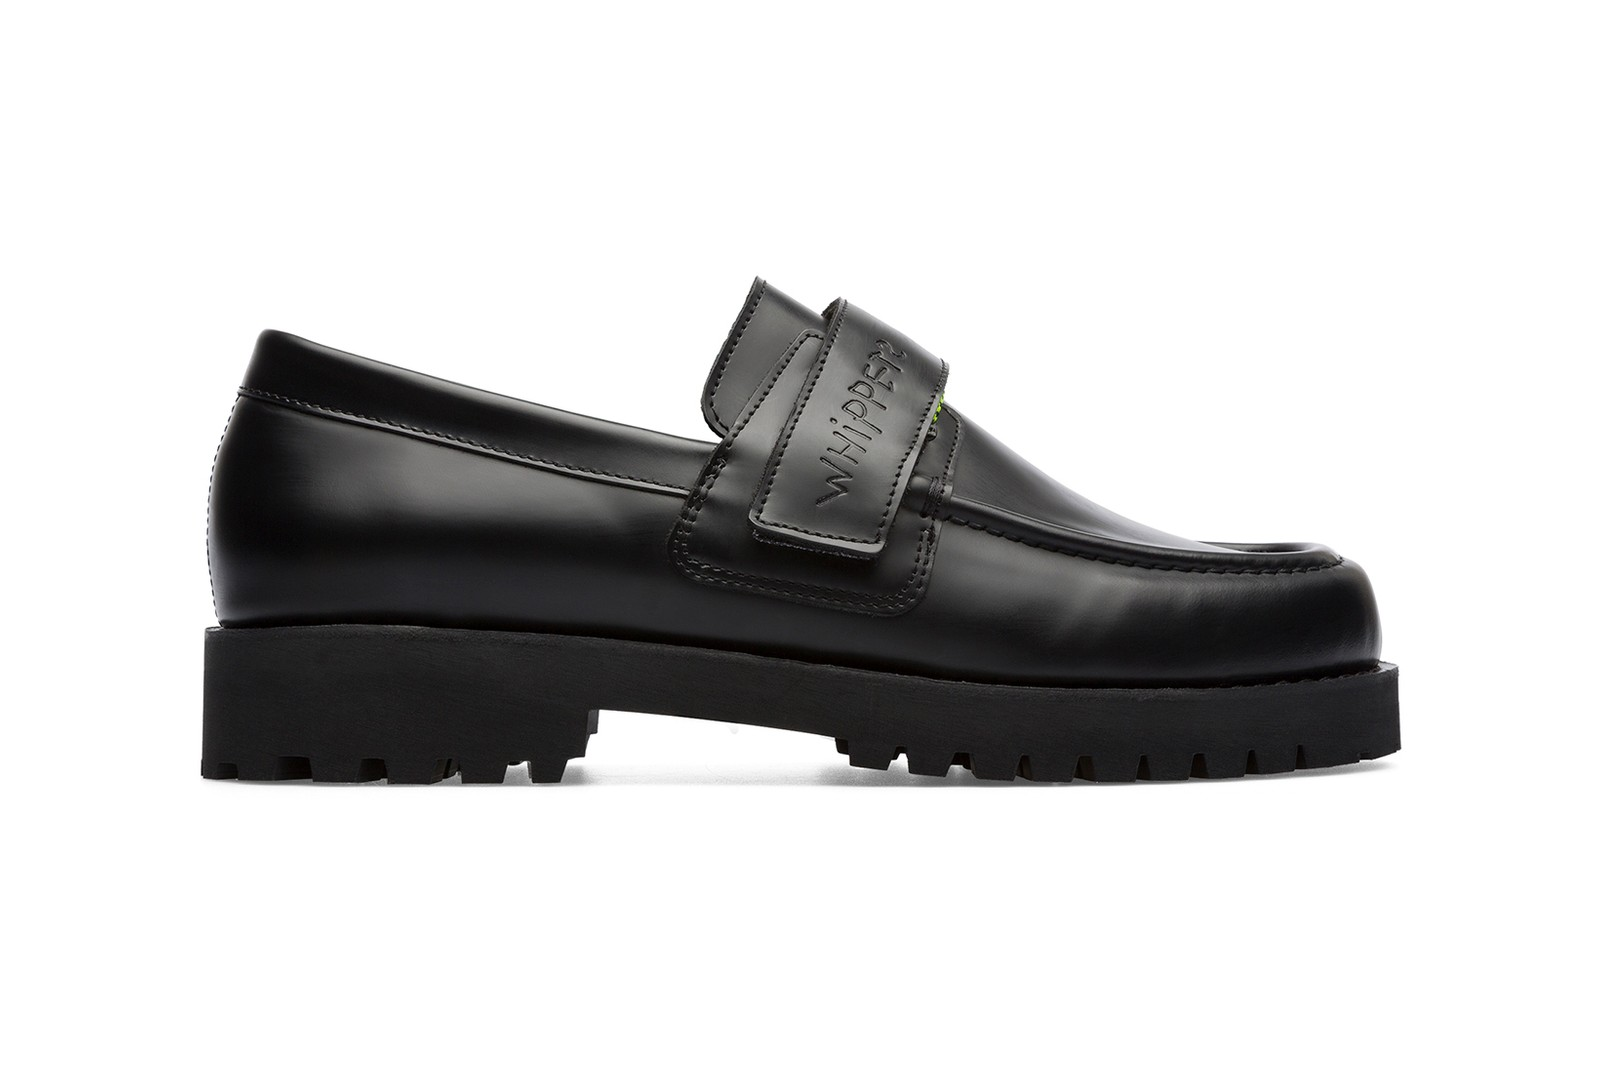 Coco Capitán x Camper Moccasin Shoe Loafer